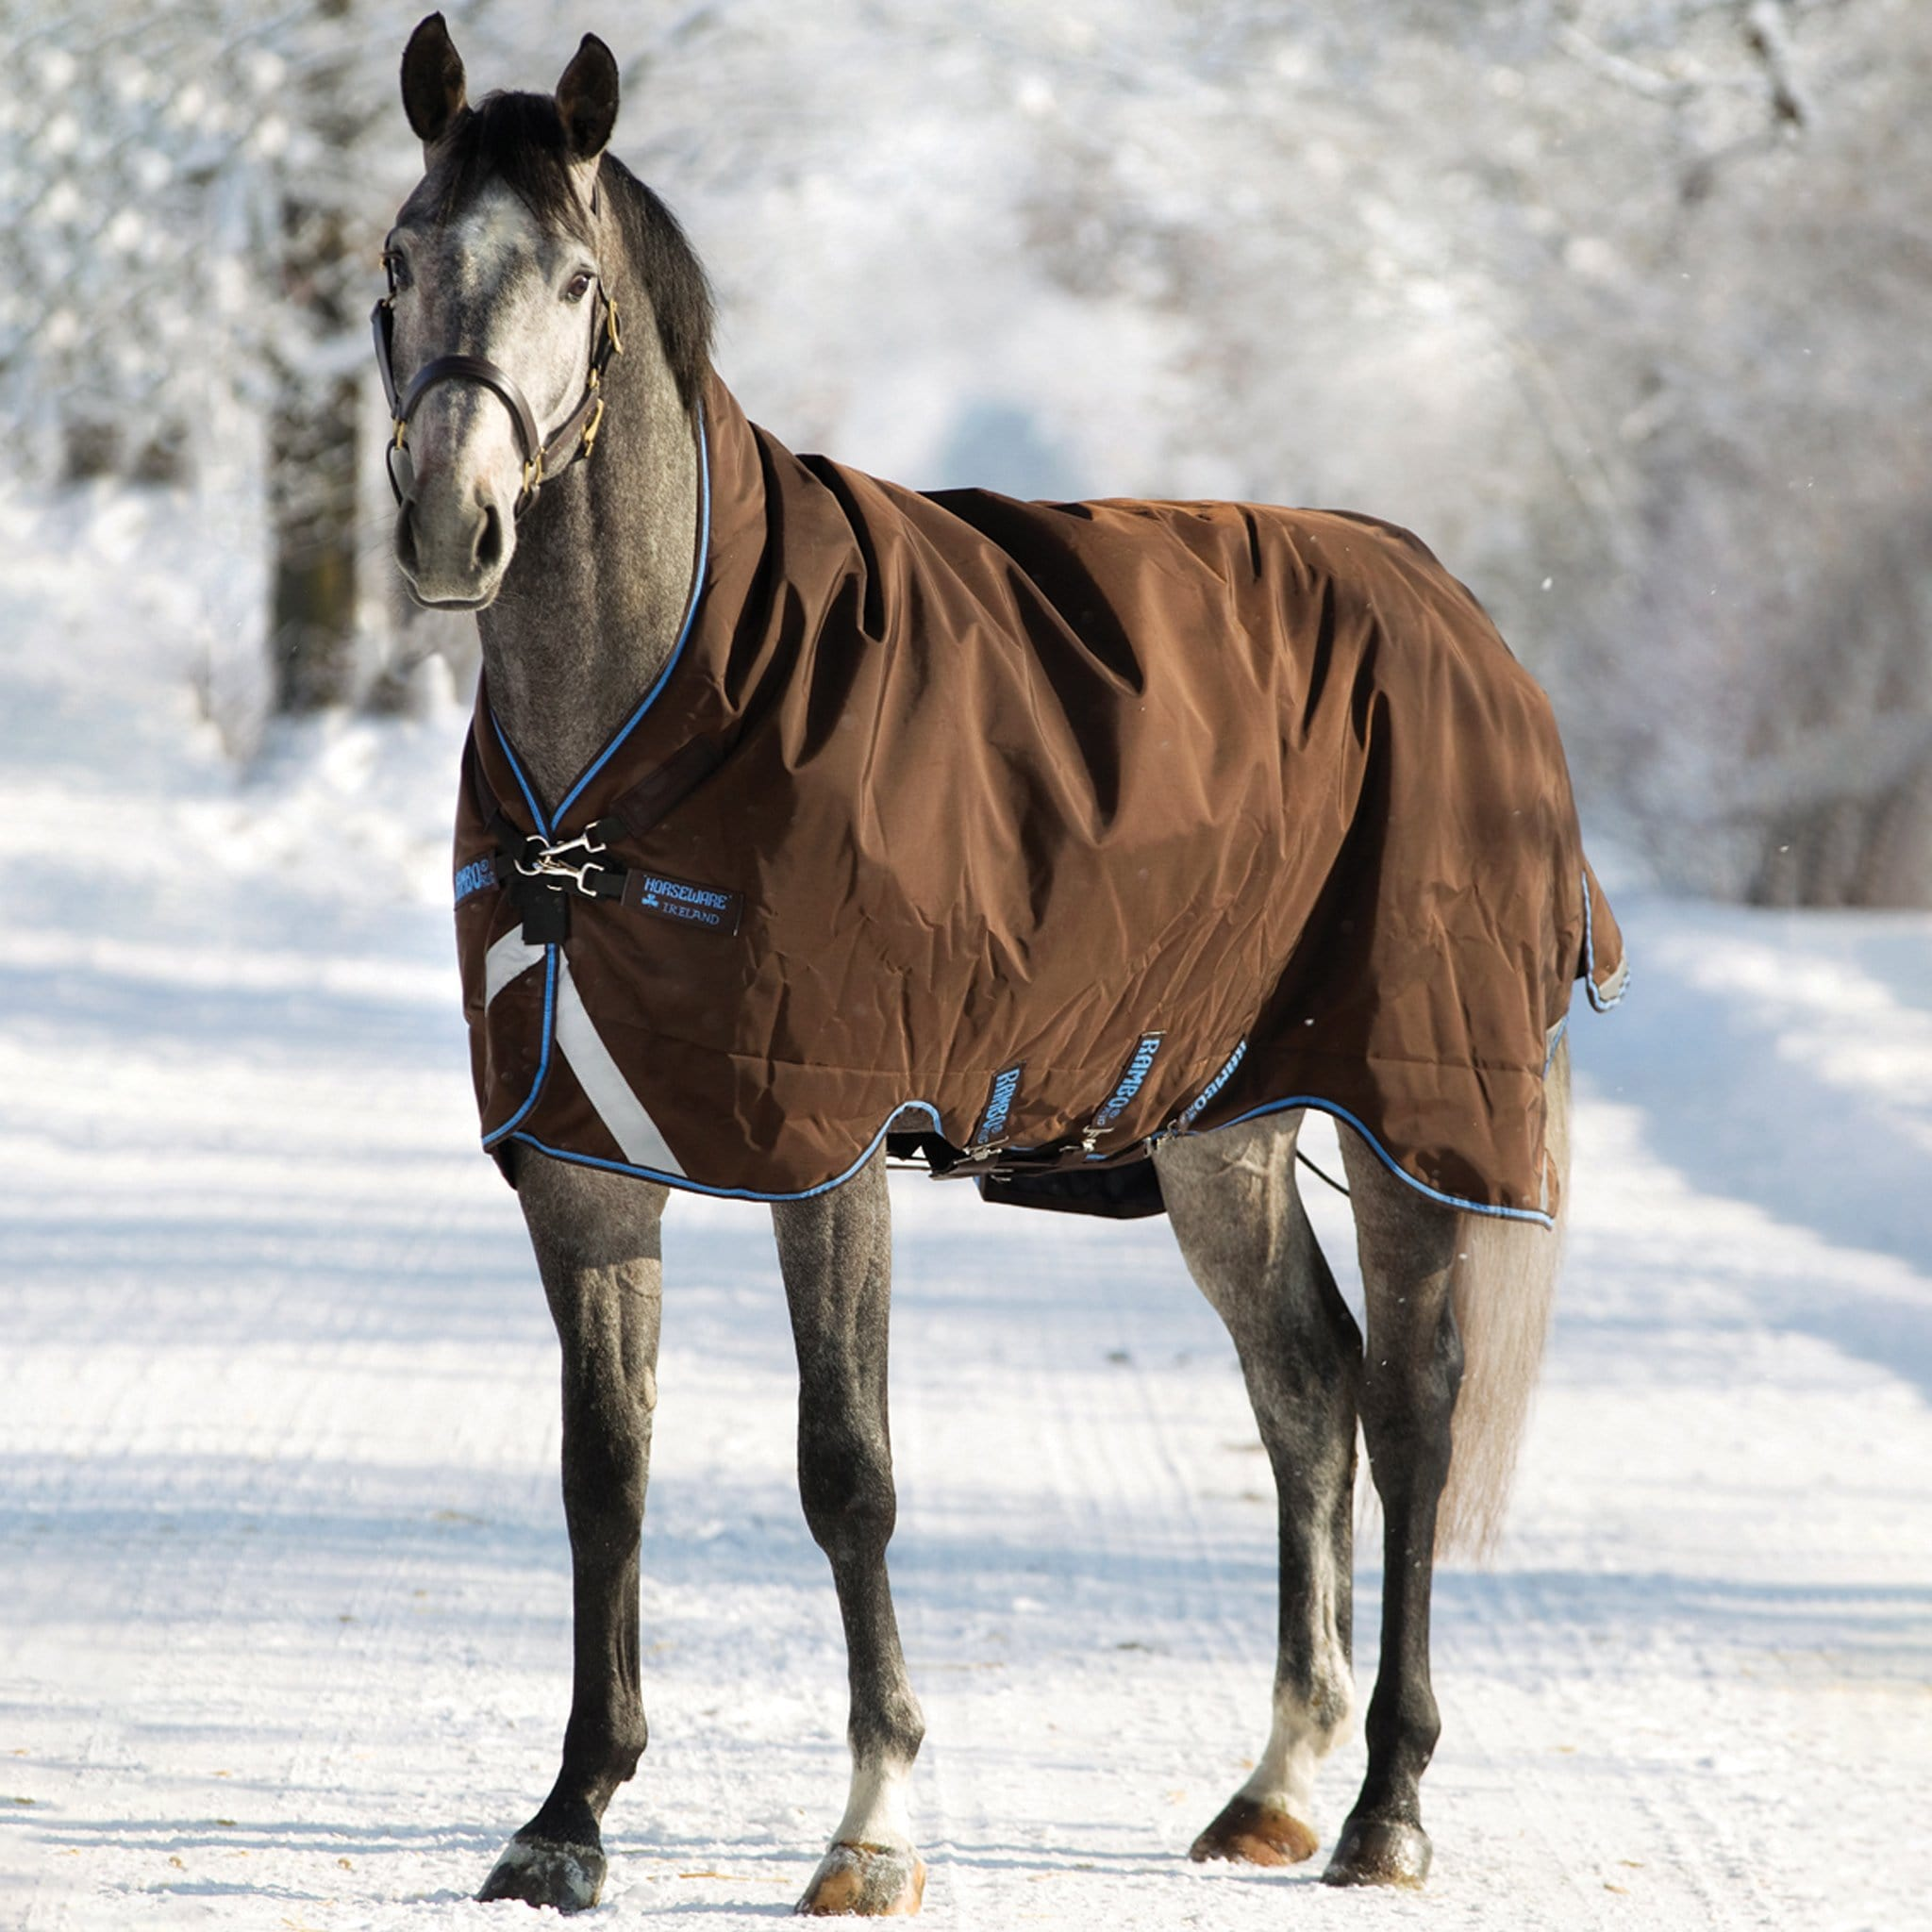 Rambo Wug with Vari-Layer Mediumweight 250g Standard Neck Turnout Rug Brown And Baby Blue On Grey Horse In Snow Standing AAAV32.